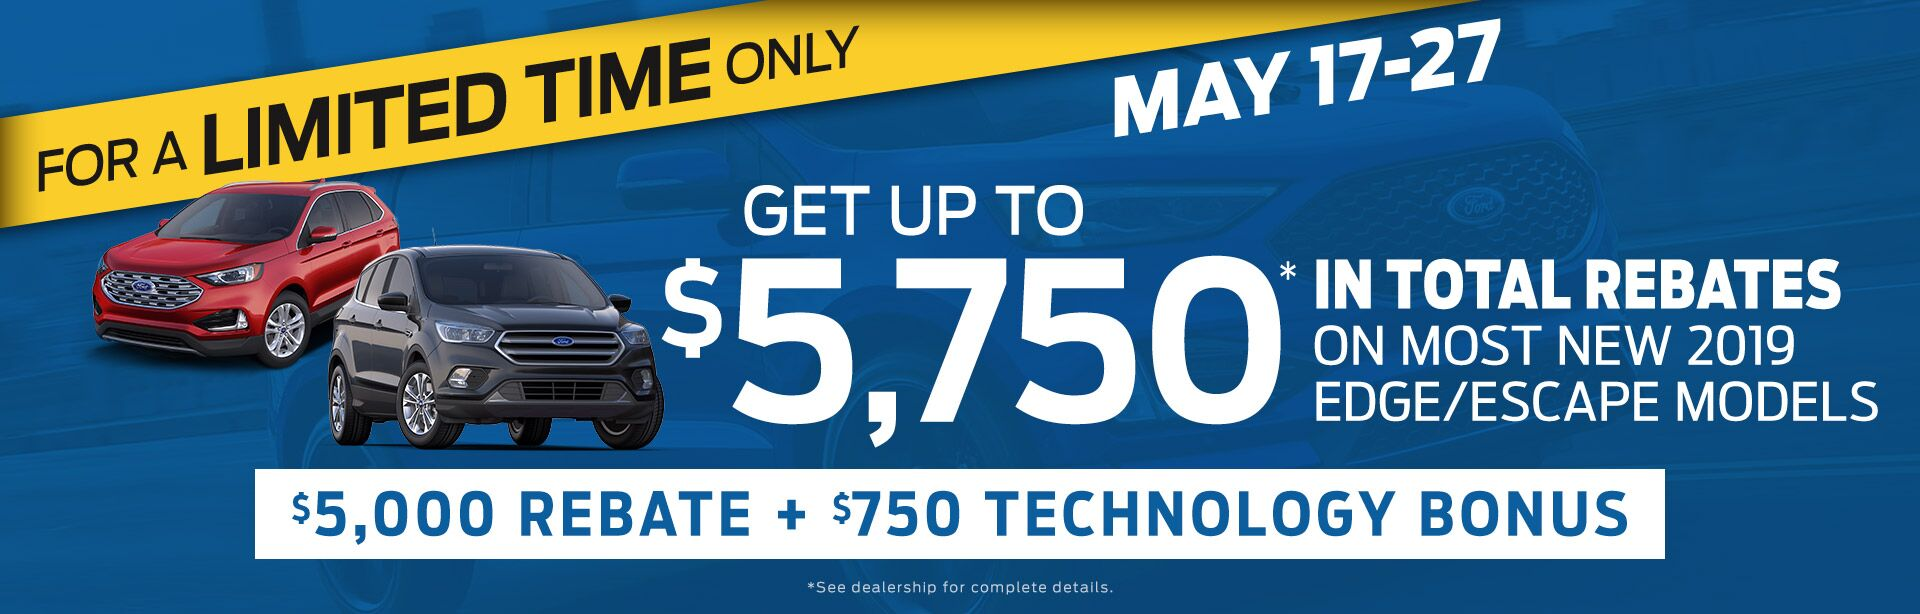 Get Up to 5,750 in Total Rebates